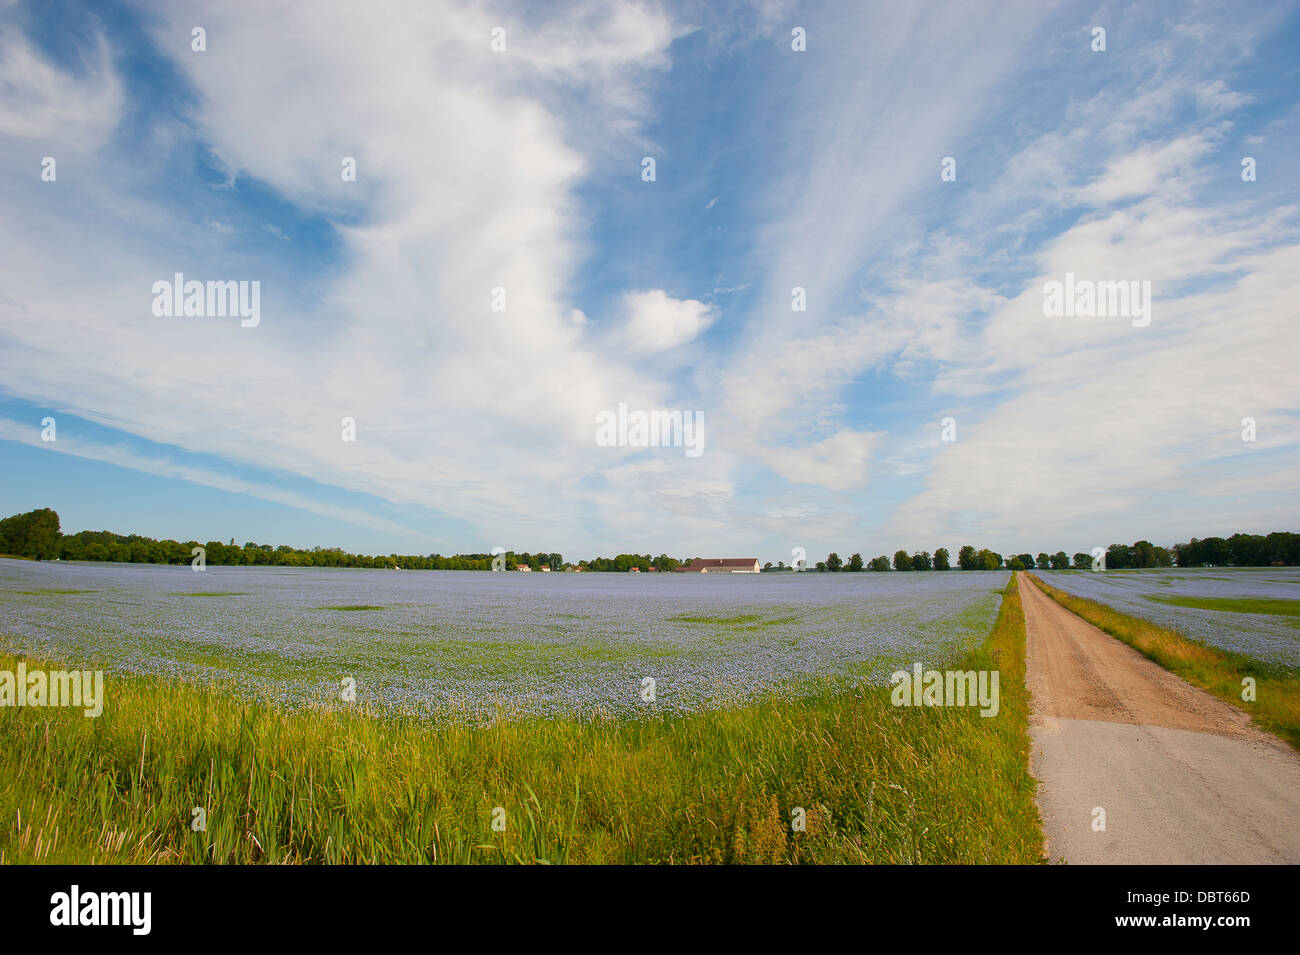 Dirt road vanishing into flooded filed - Stock Image